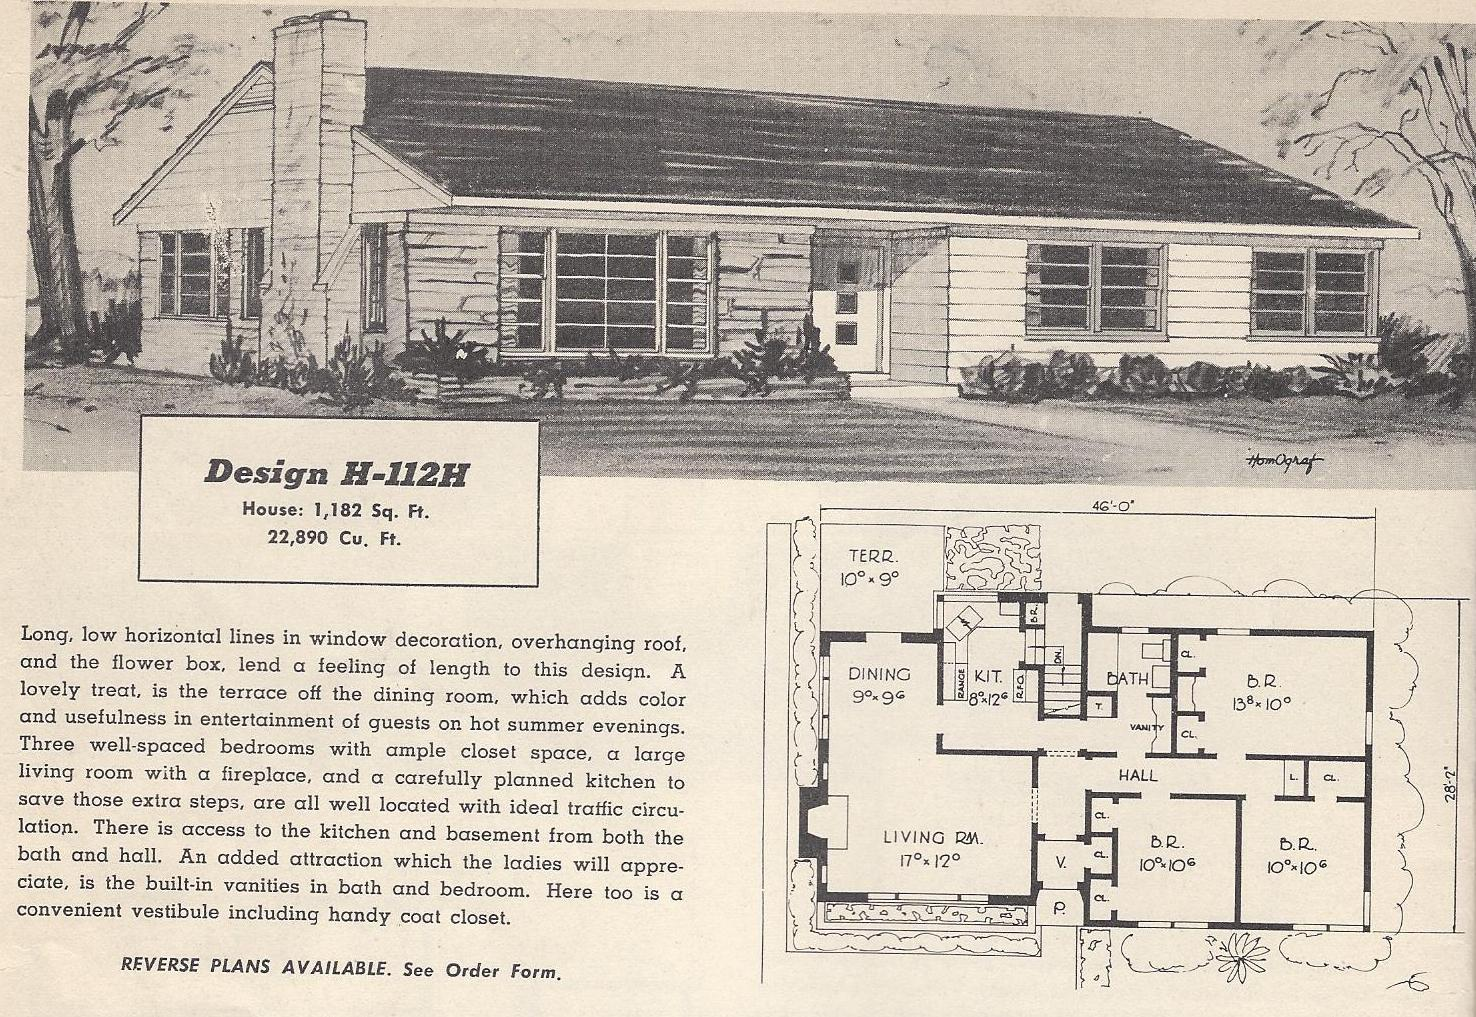 Vintage house plans 112h antique alter ego for Vintage ranch house plans